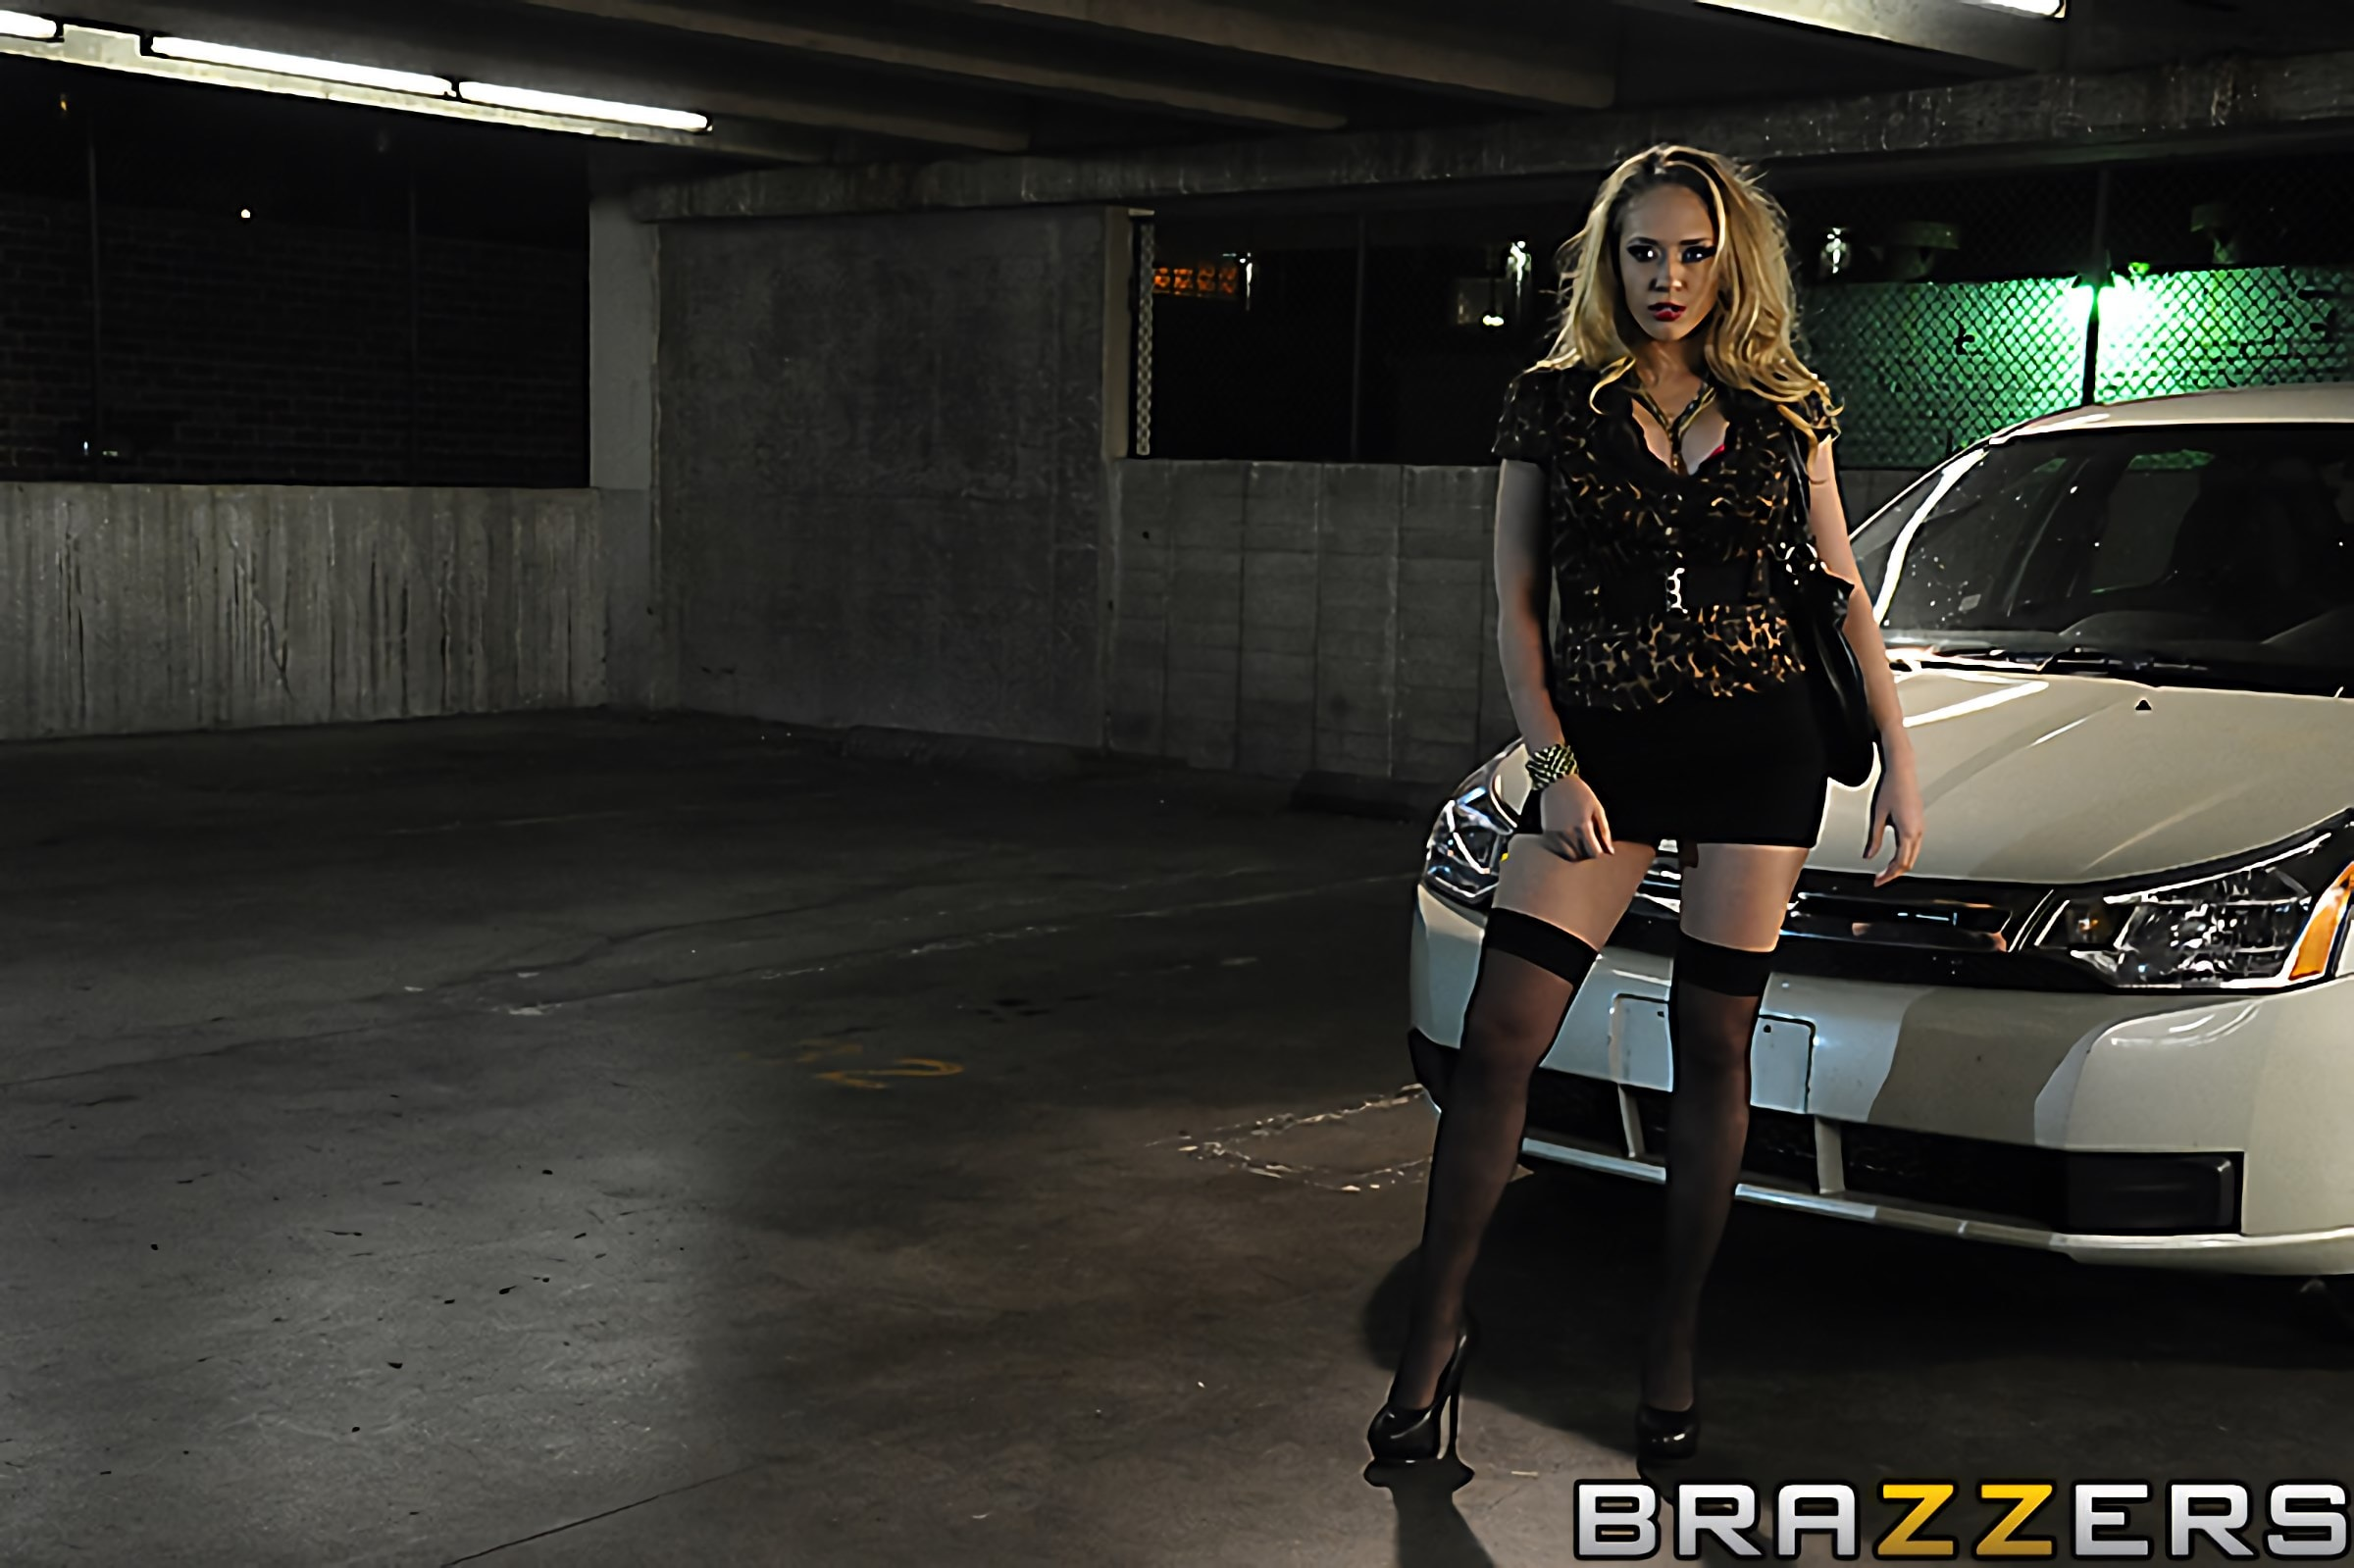 Brazzers 'Ep-1- Wet Traces to Nowhere' starring Kagney Linn Karter (photo 5)